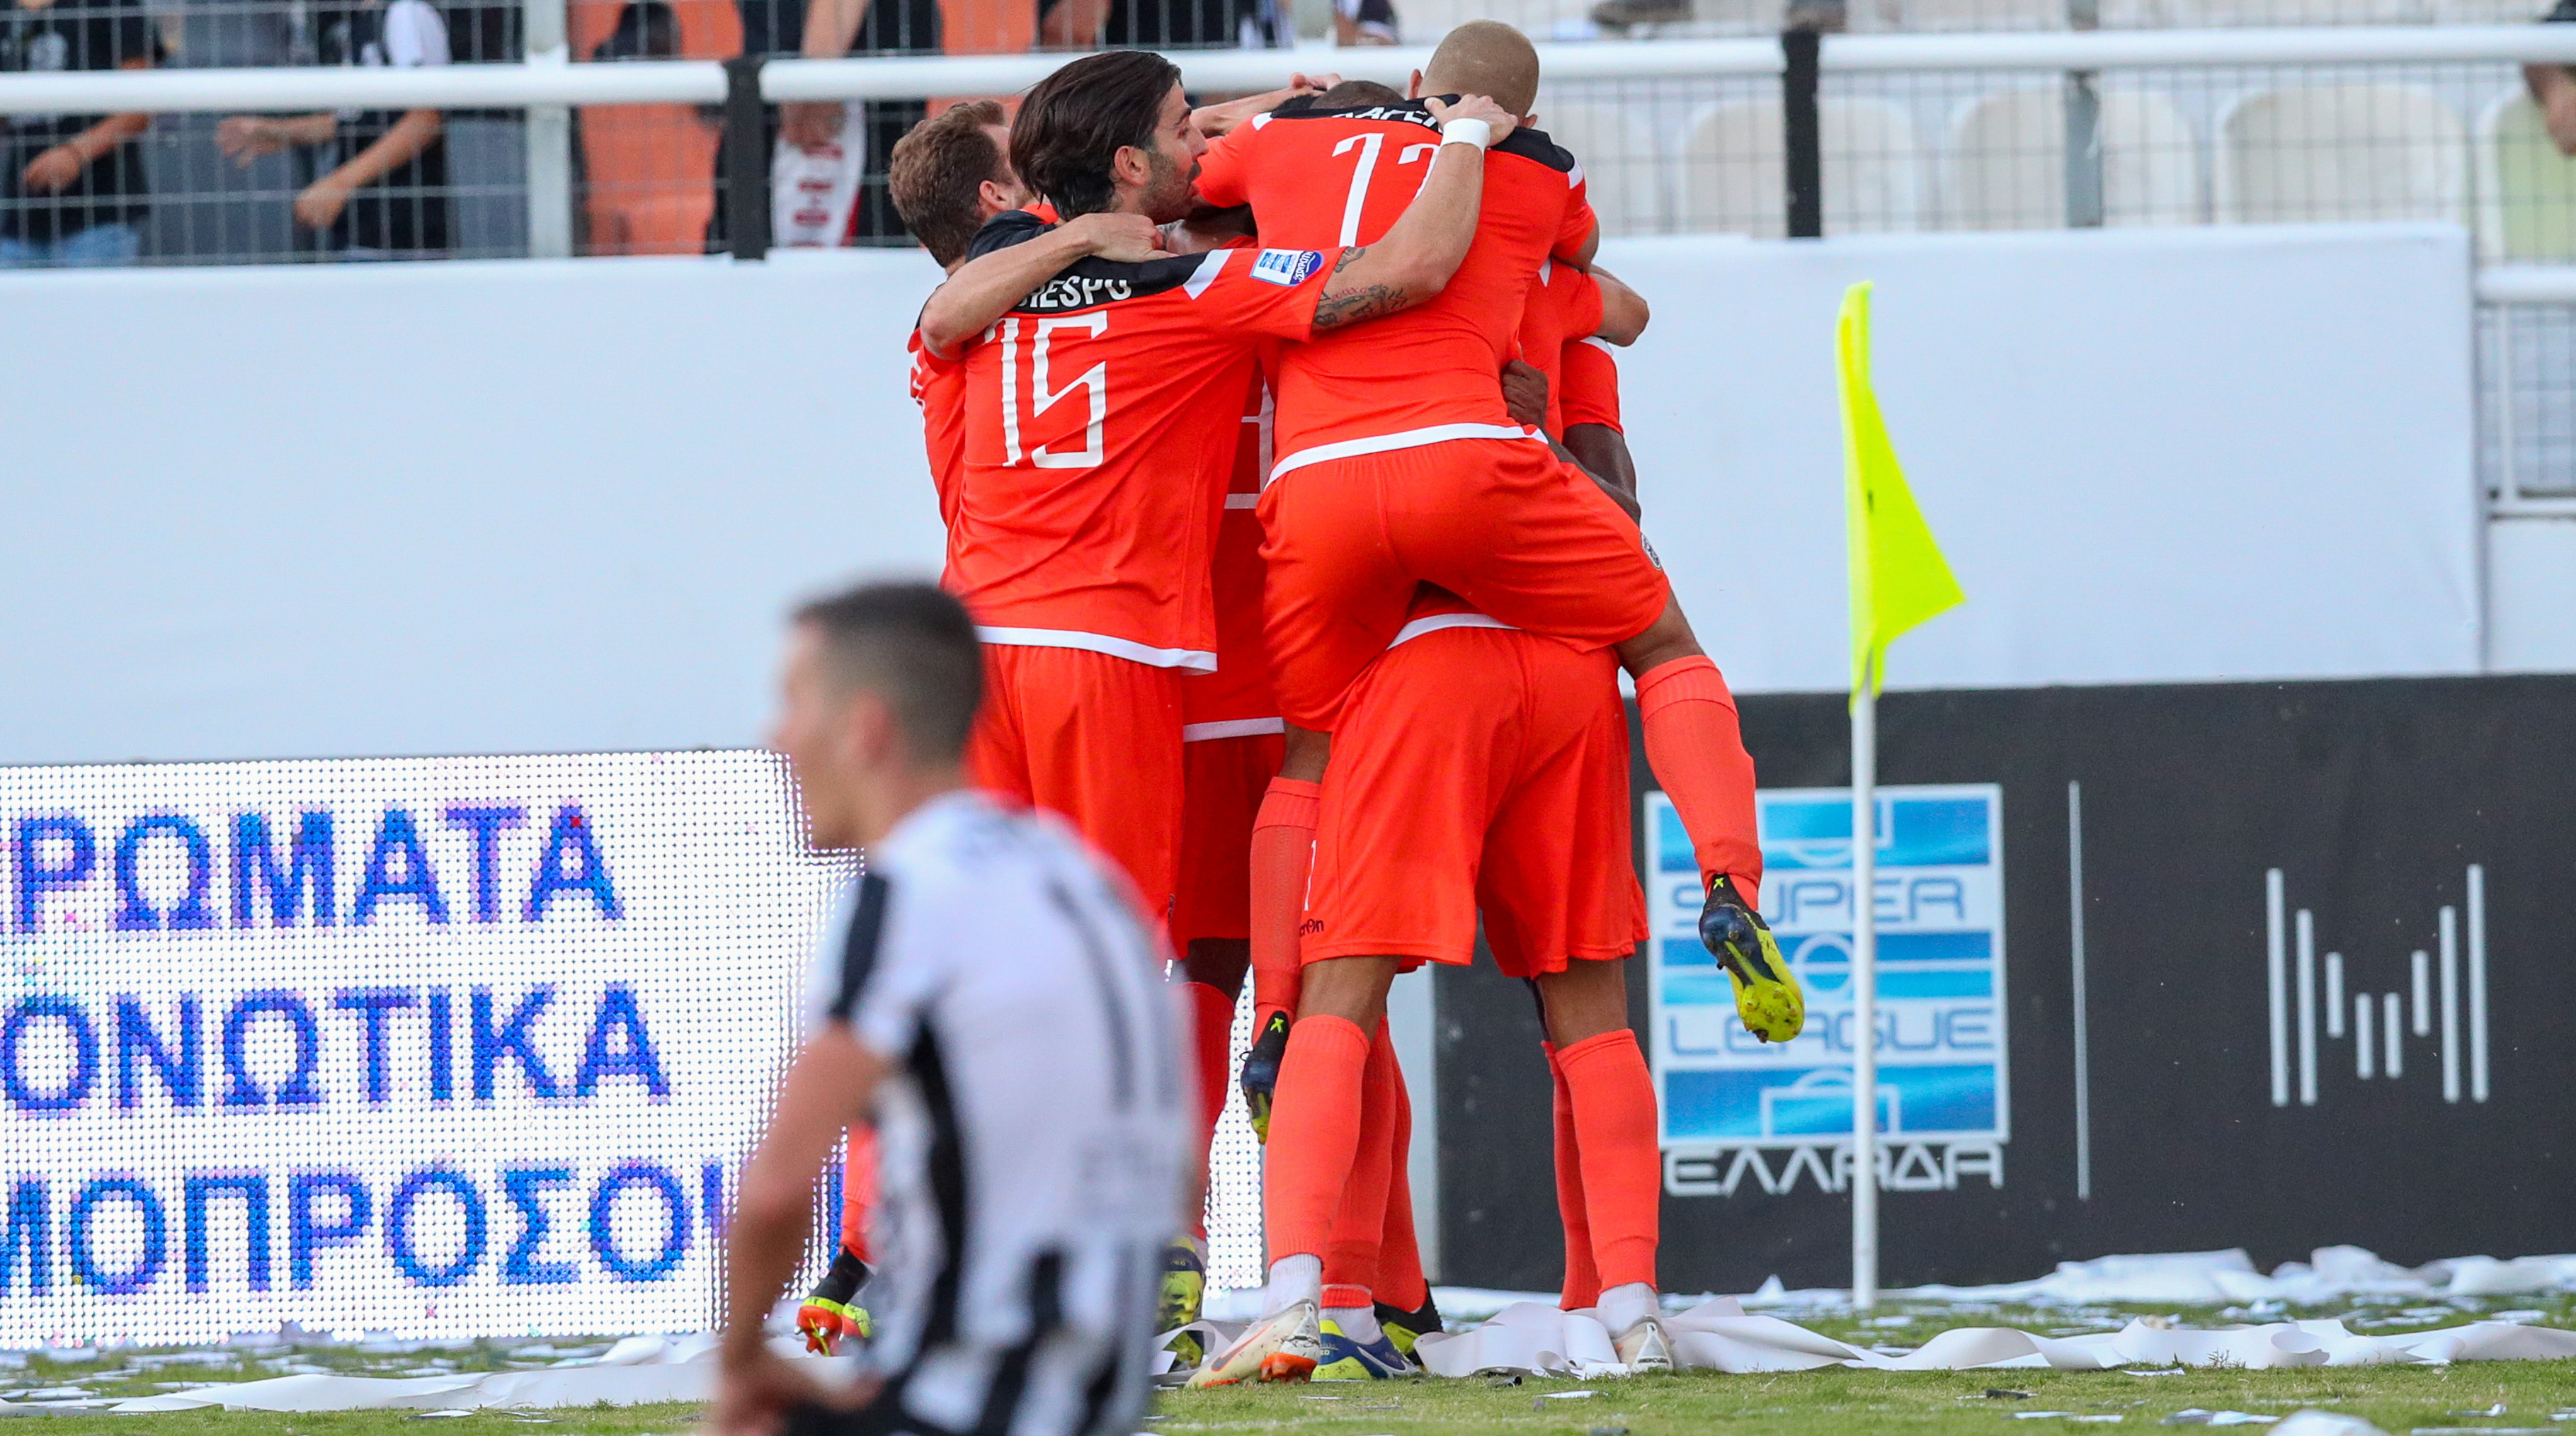 OFI Crete – PAOK: Highlights